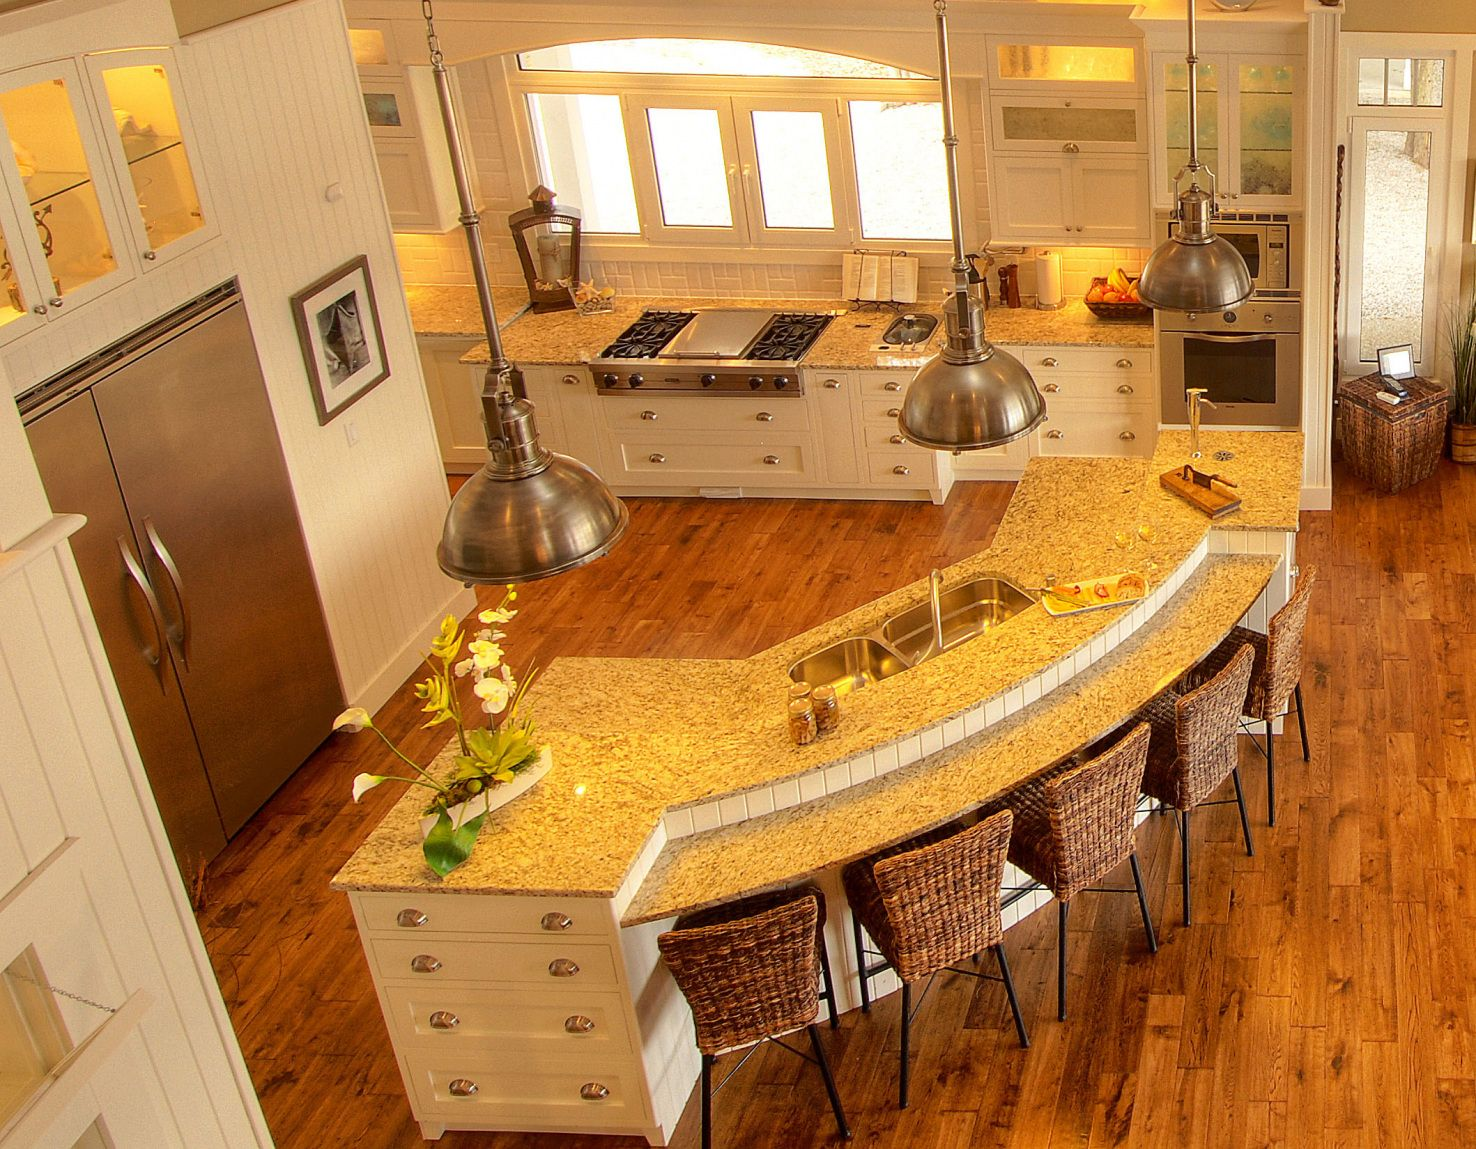 20 Can You Use Clorox Wipes On Granite Countertops Kitchen Counter Top Ideas Check